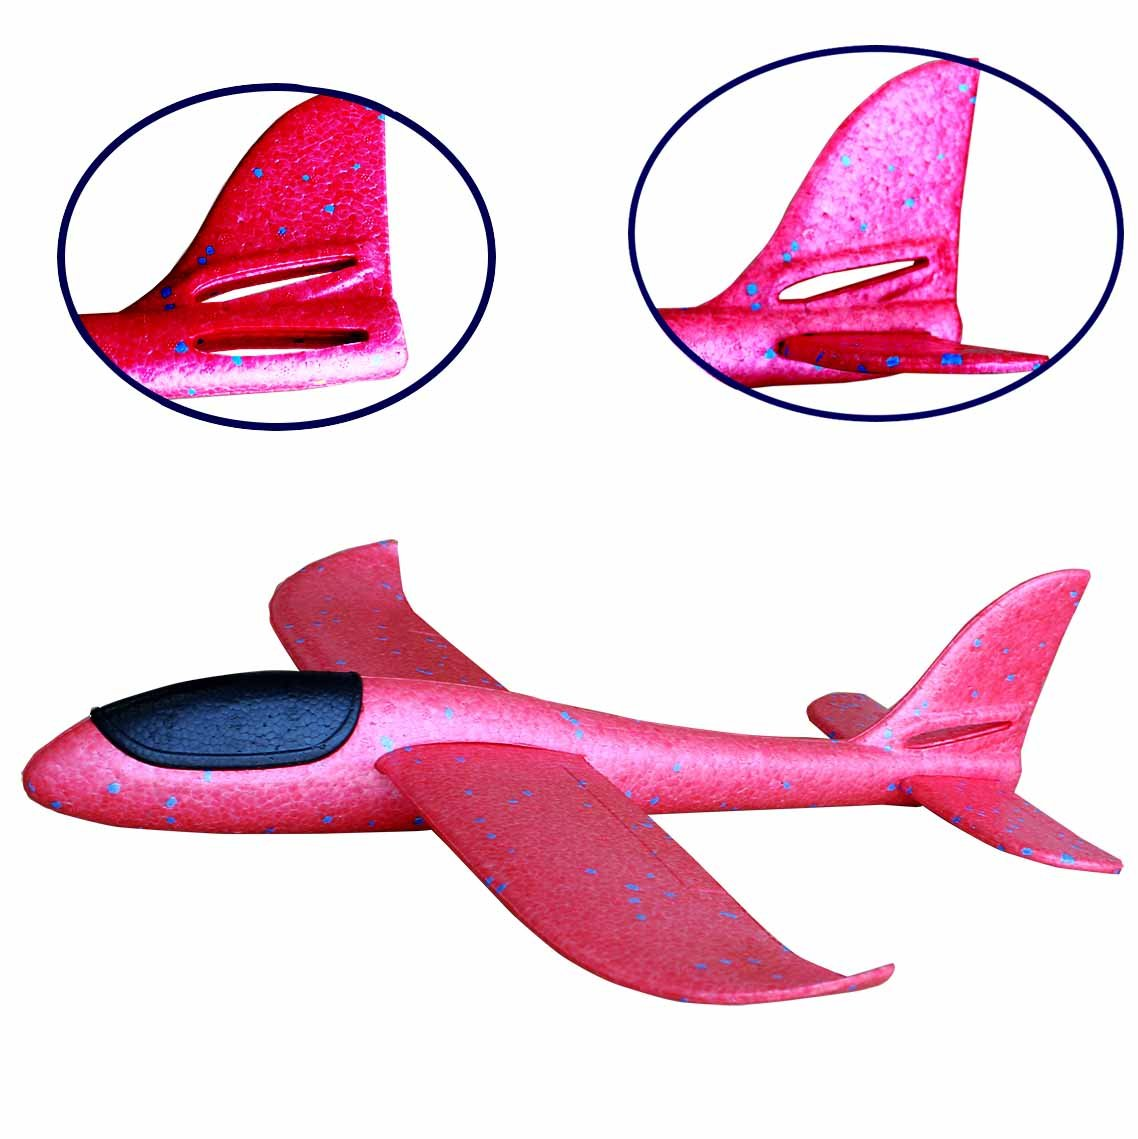 Eiito Throwing Foam Airplane, 2 Flight Mode Hand Launch Glider Plane inertia aircraft (Big 18.9 inch) Blue Kids Ourdoor Sports Toy Gift (Red 48cm-Big)